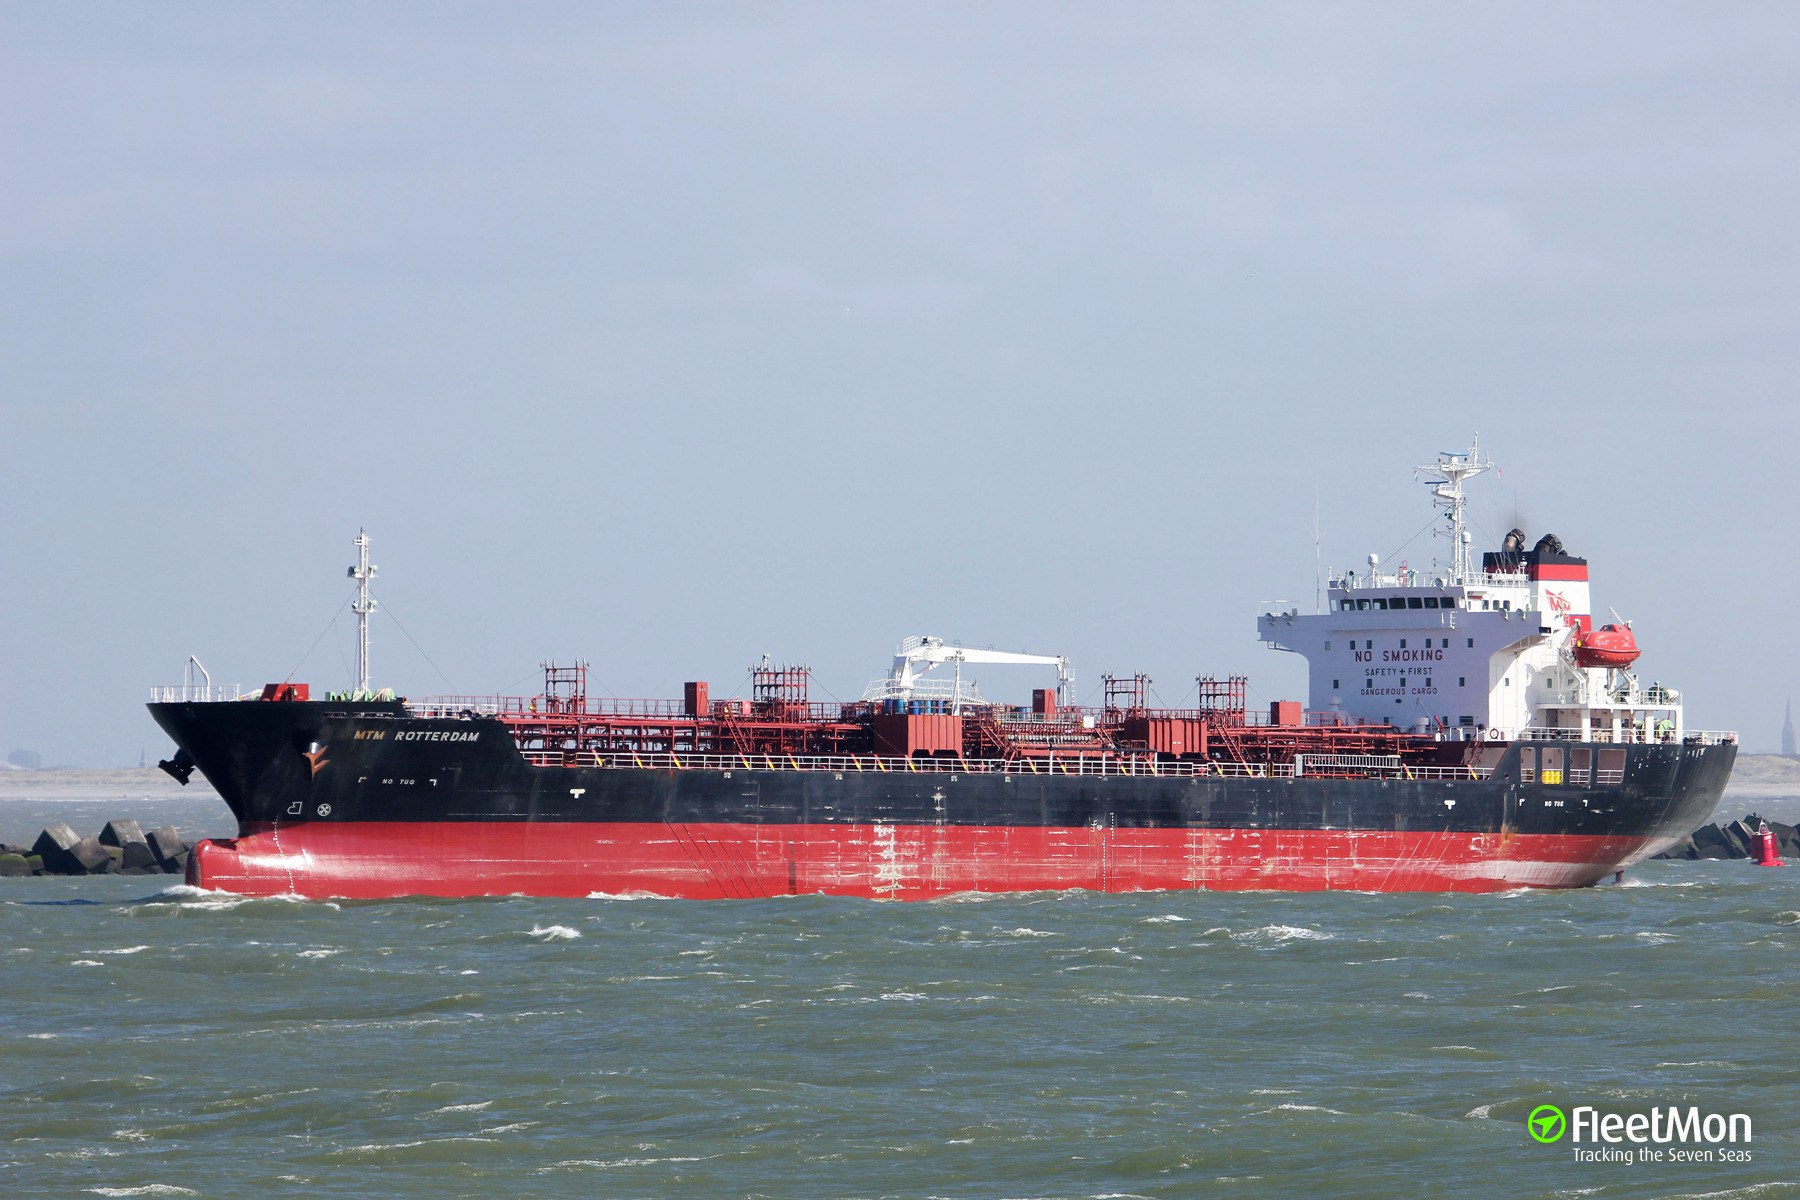 Product tanker MTM Rotterdam had to divert to Bermuda